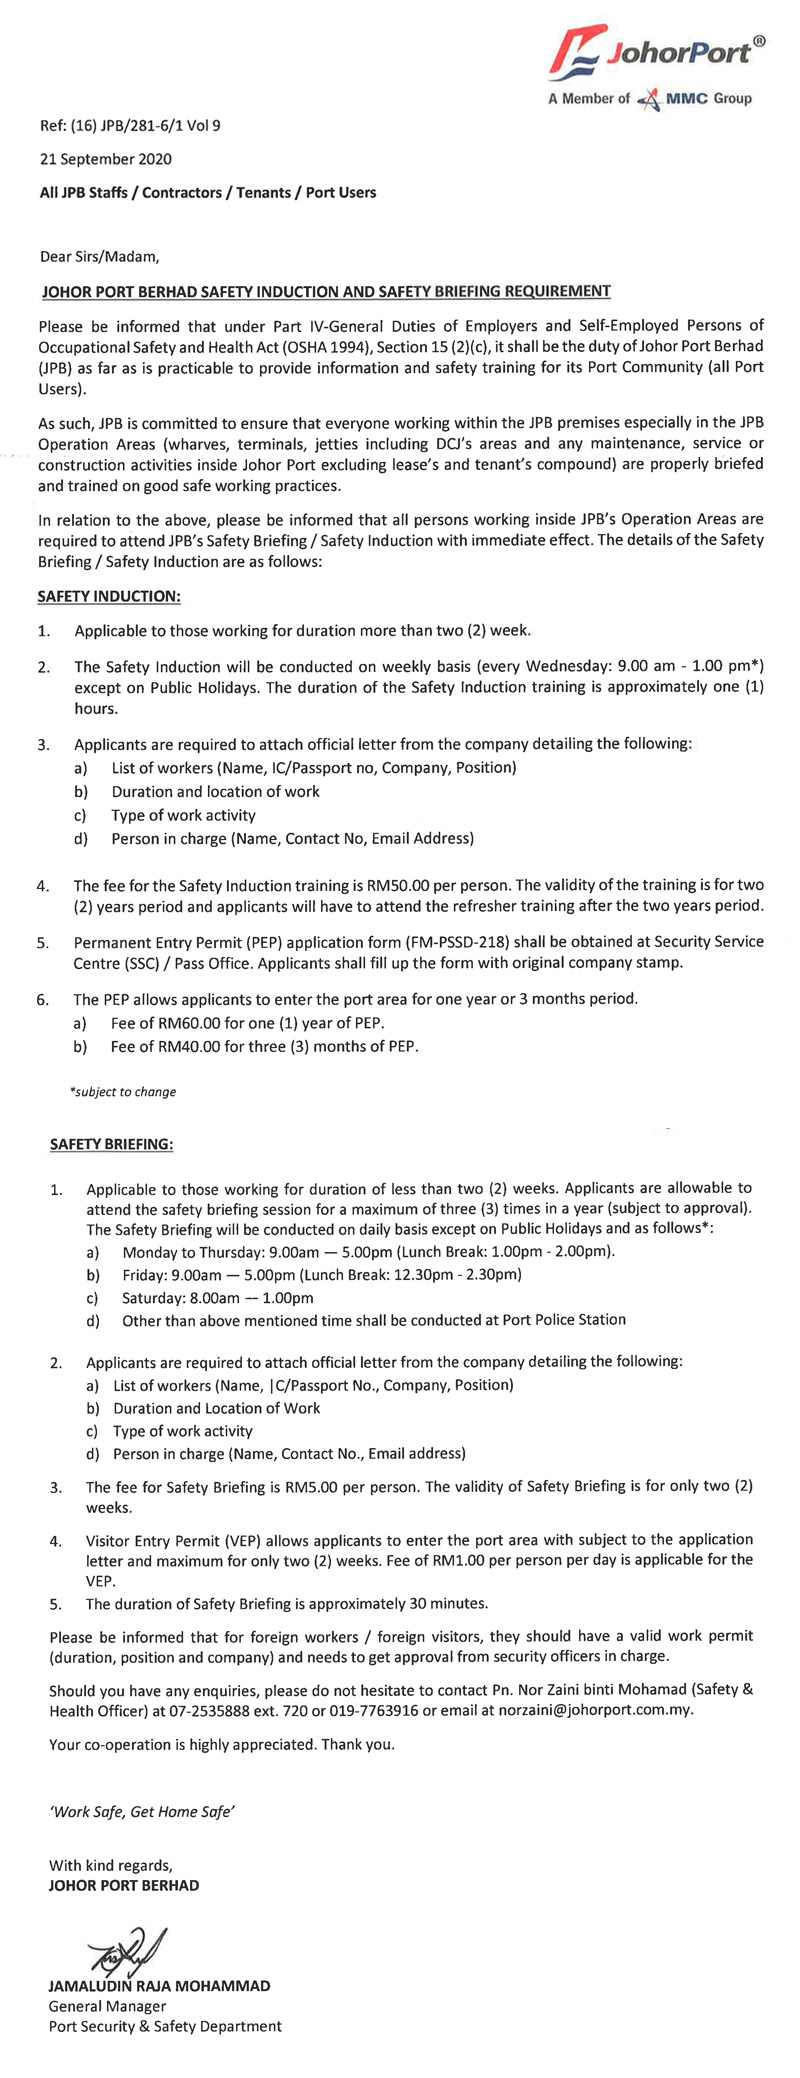 Johor Port Berhad Safety Induction and Briefing Requirement